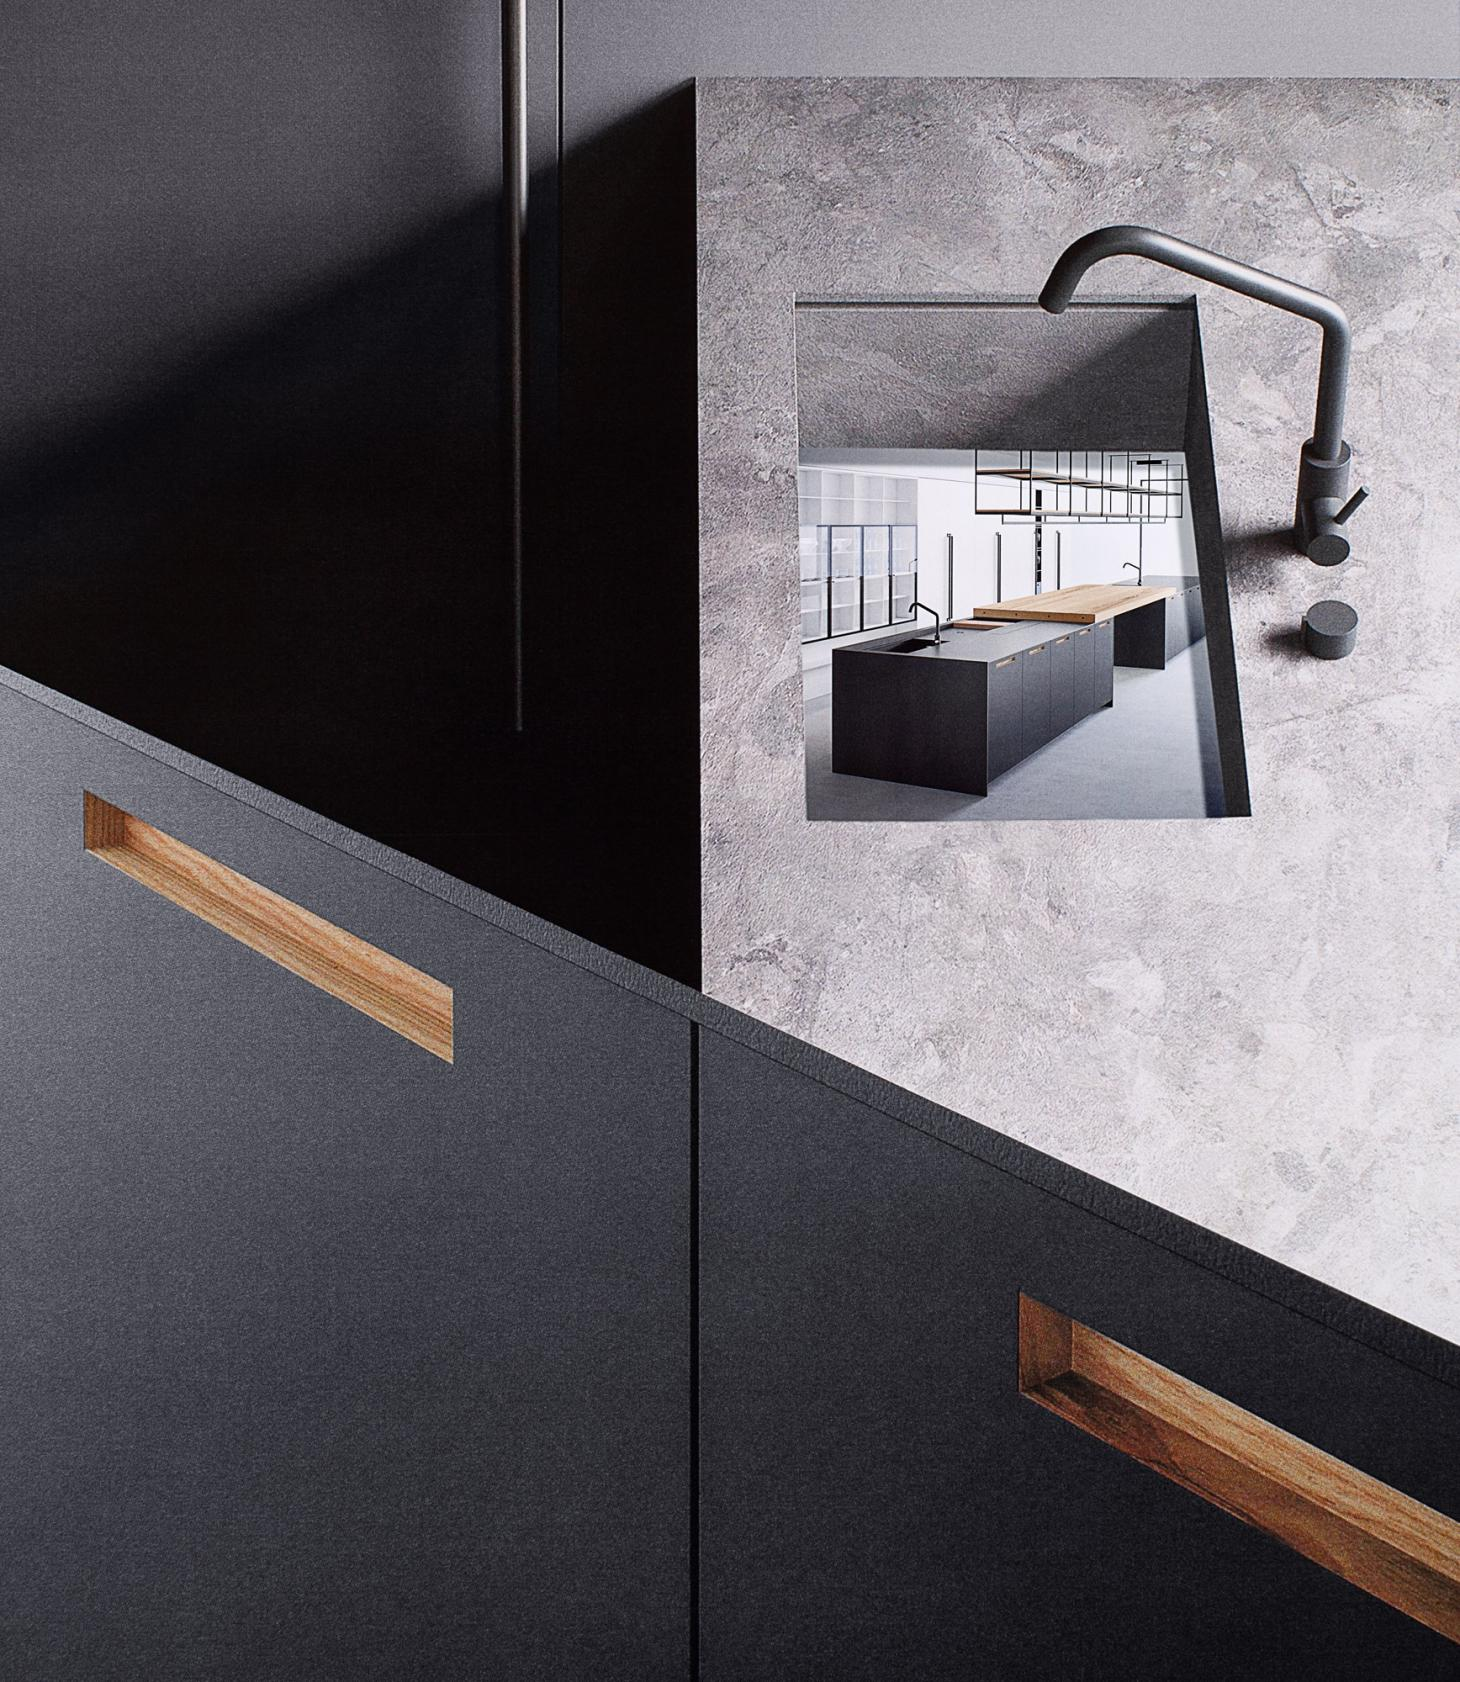 A collage of layered images showing the 'Aprile' kitchen with 'Sloane' handle by Boffi, with a detail shot showing the recessed handle in wood over a black cupboard door